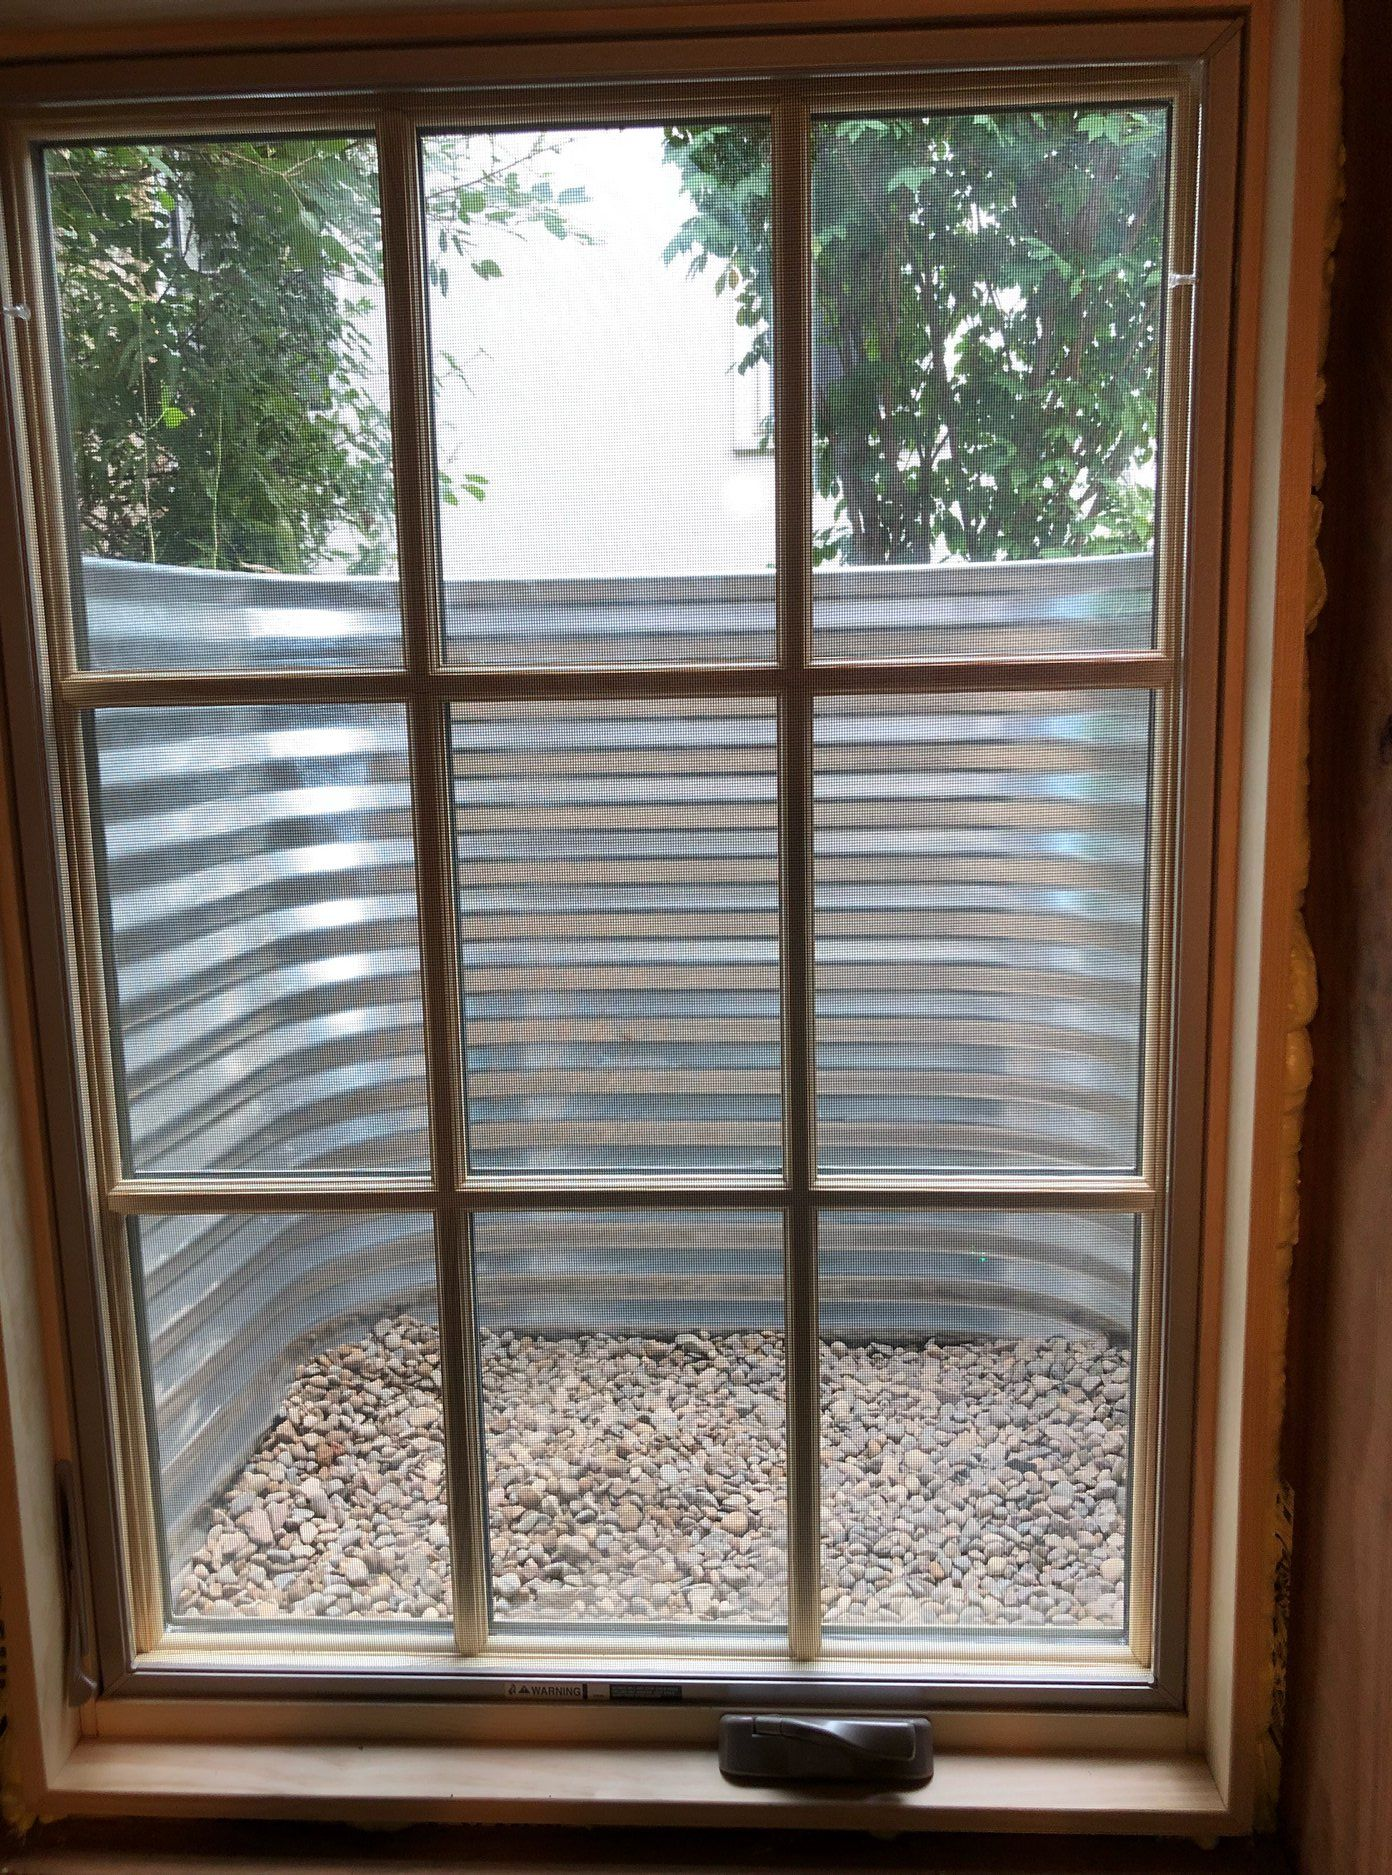 Great Looking Custom Marvin Integrity Casement Window In A Galvanized Well Installed For Custome Basement Windows Casement Windows Replacement Casement Windows